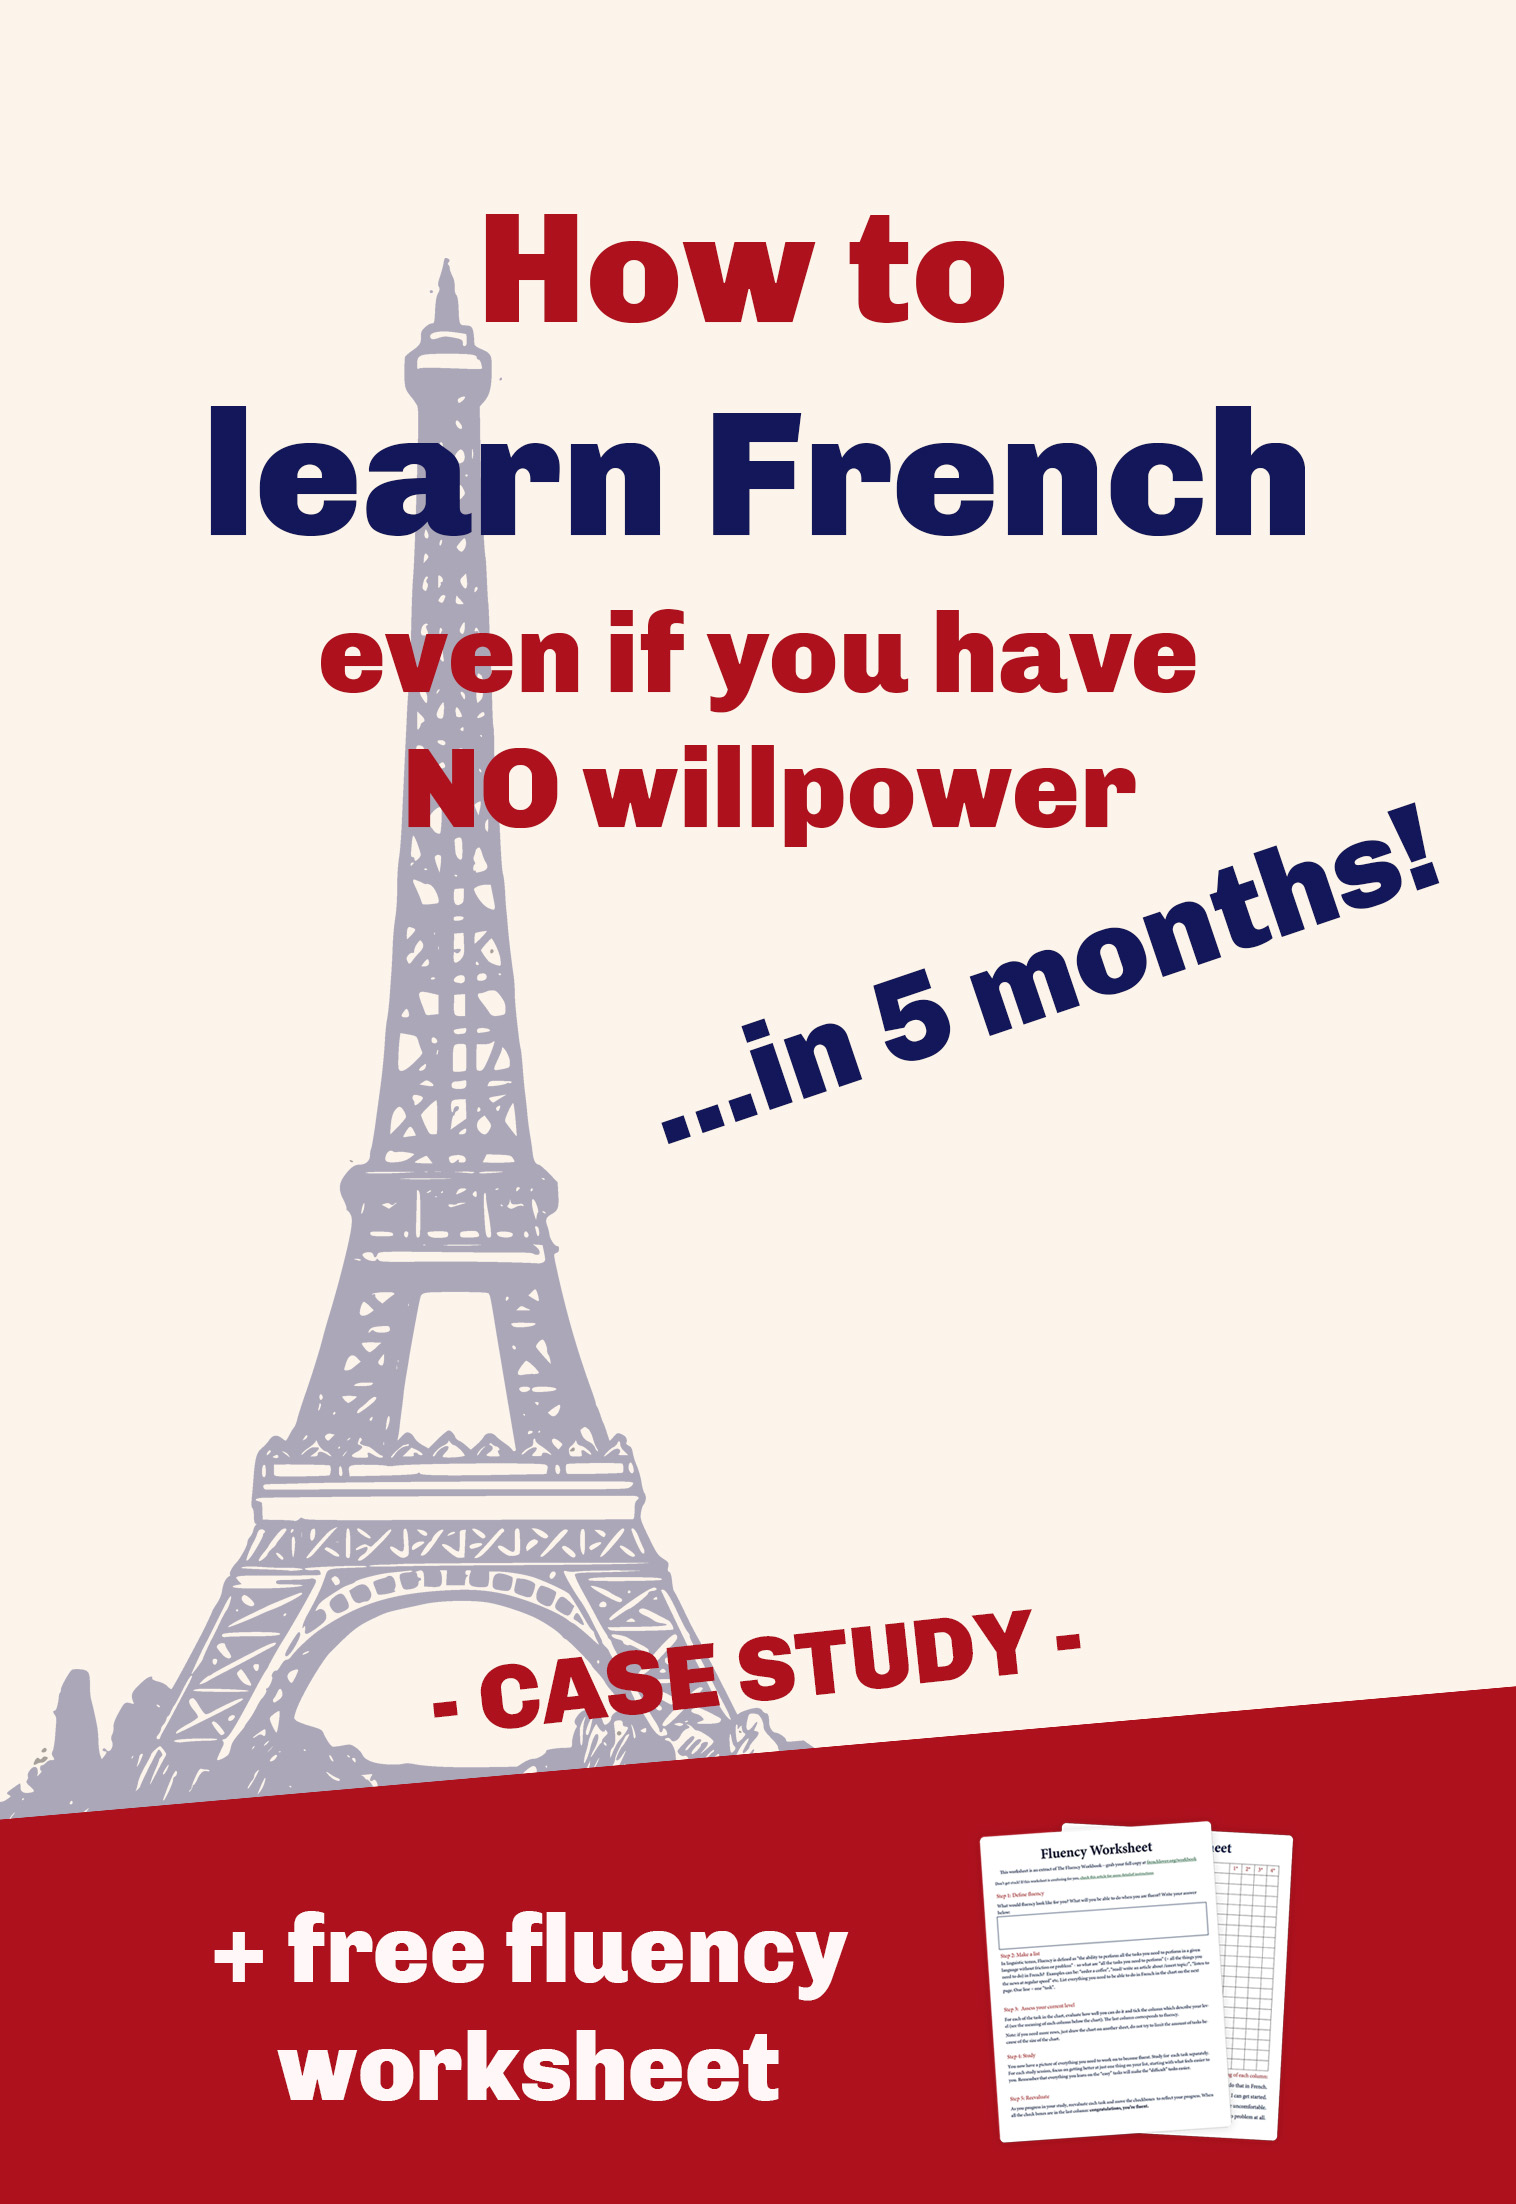 This French student shares his French learning journey. Can you learn French to fluency in 5 months with no willpower? Well he did it. Click through to find out how he could remember French vocabulary and French grammar easily and converse with French natives without even realizing. And the best is: the French learning system he used is also available to you. Save and share this pin so others can benefit as well.  #learnfrench #frenchlearning #frenchvocabulary #frenchgrammar #frenchstudy